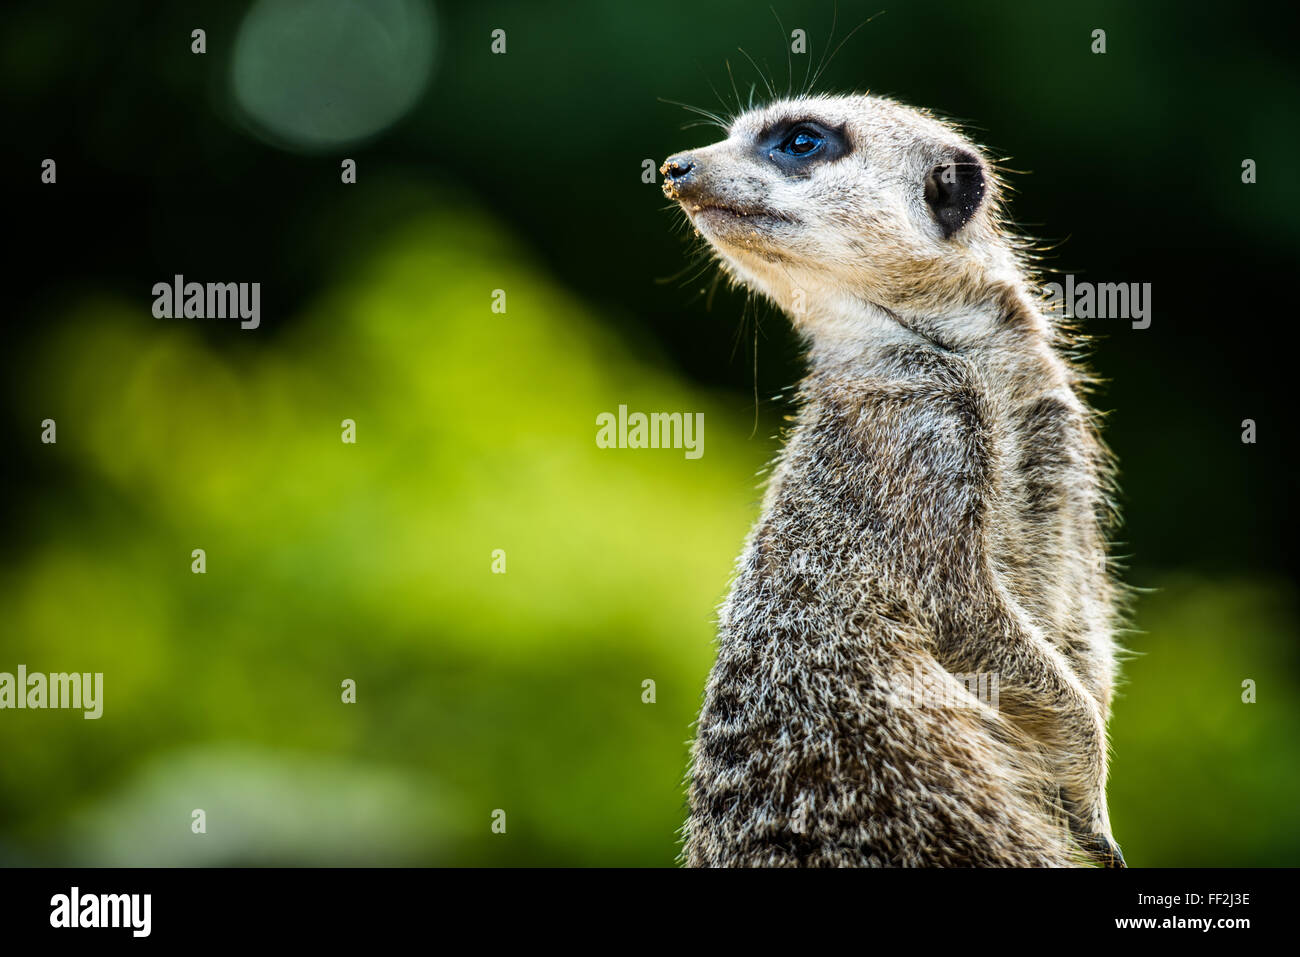 Meerkat (Suricata suricatta), in captivity, United Kingdom, Europe - Stock Image